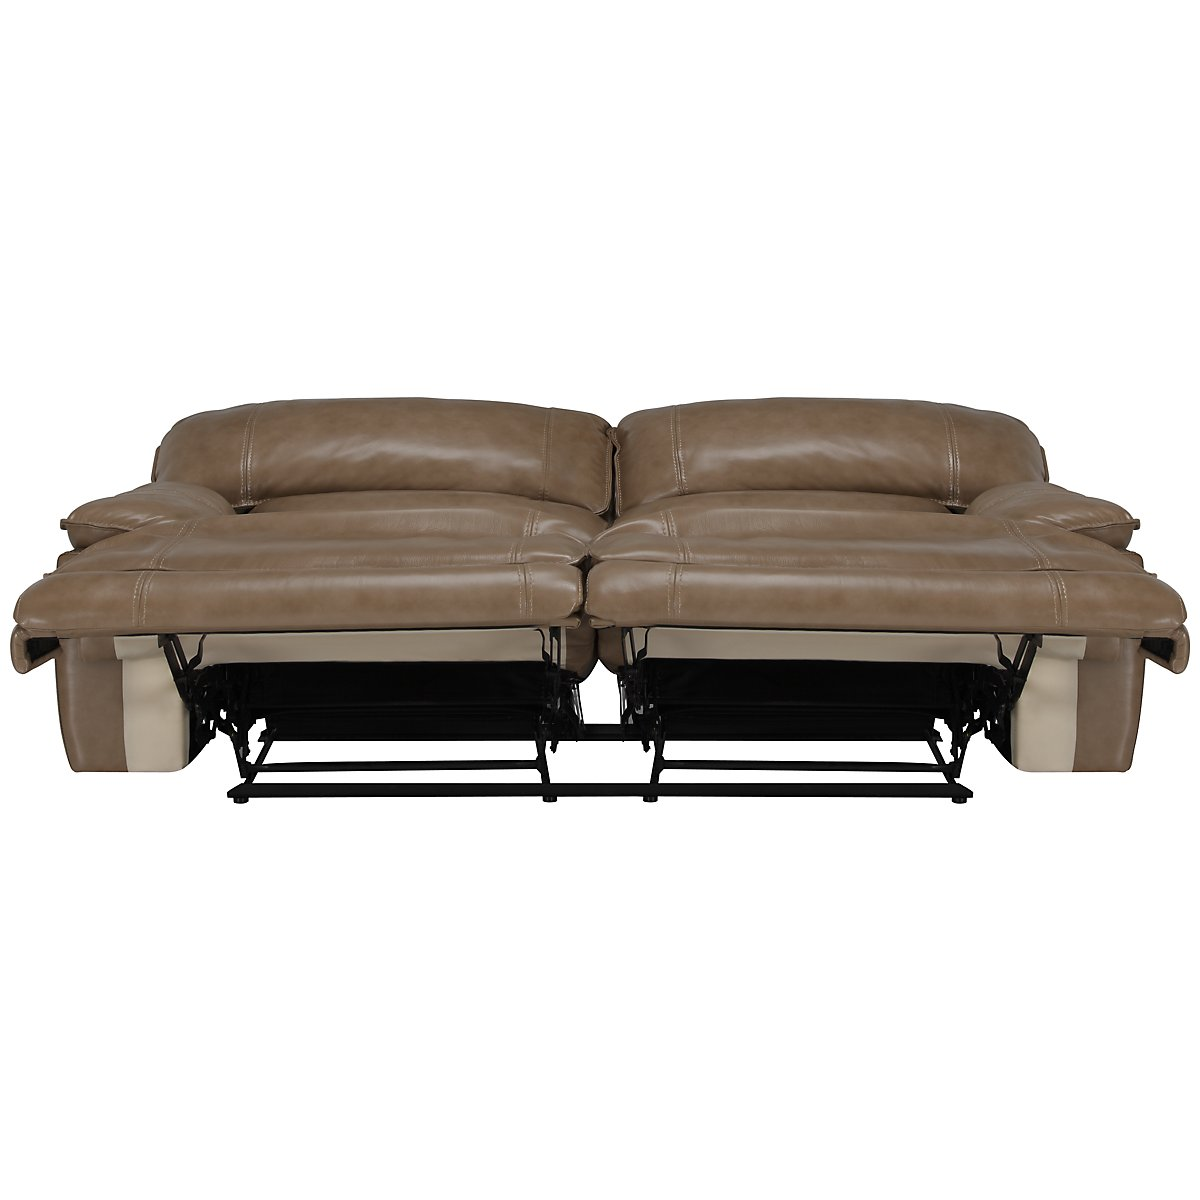 Benson Dark Taupe Leather & Vinyl Reclining Sofa